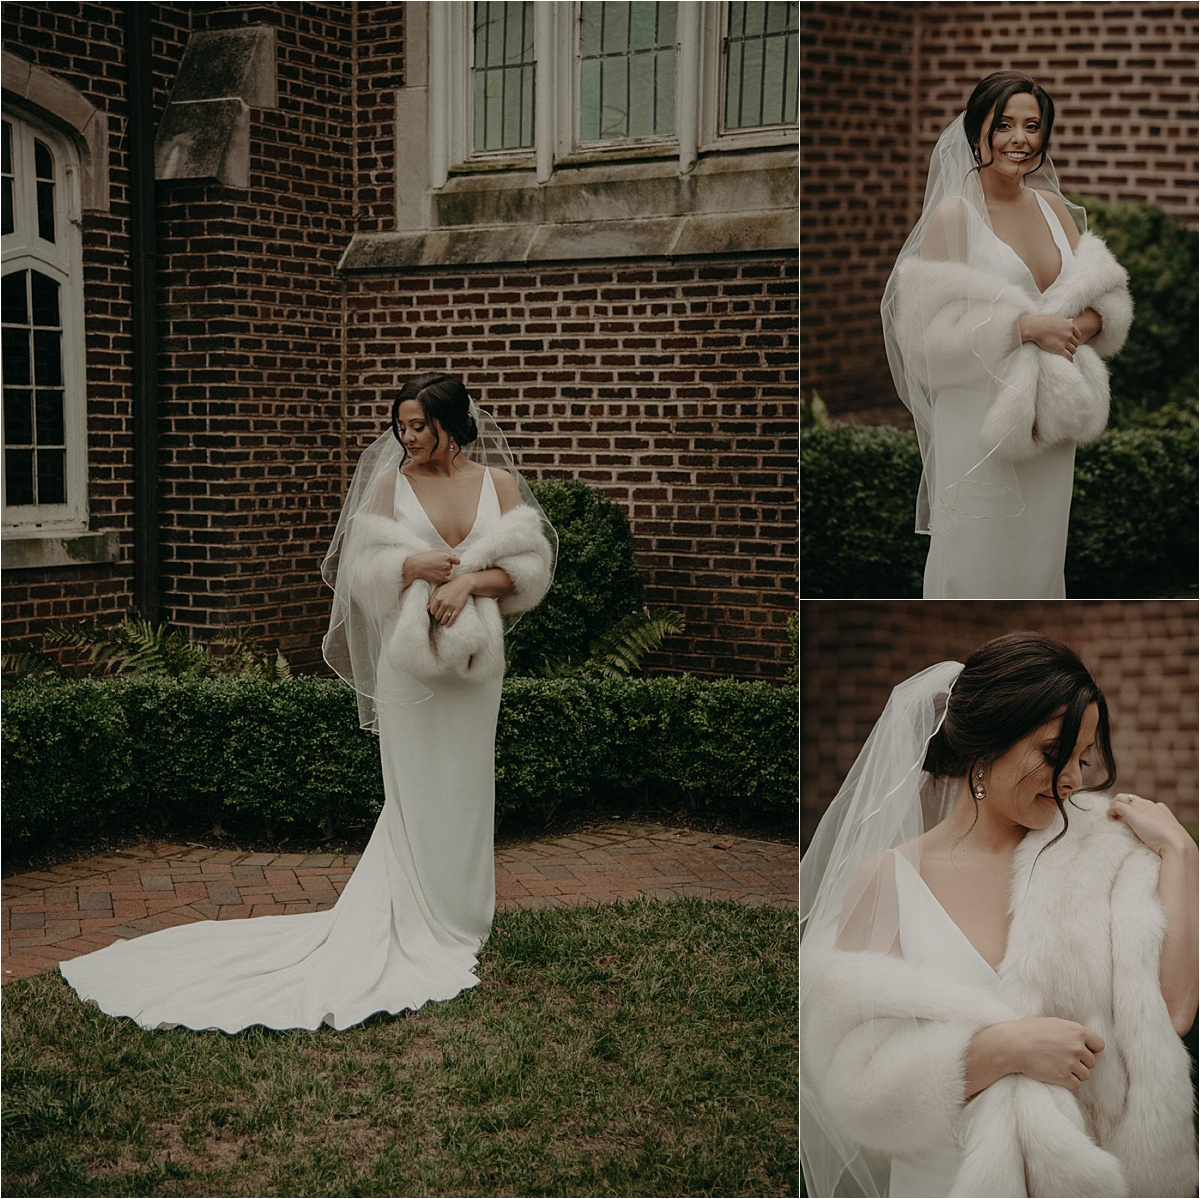 The bride wore an heirloom fur shawl to keep warm